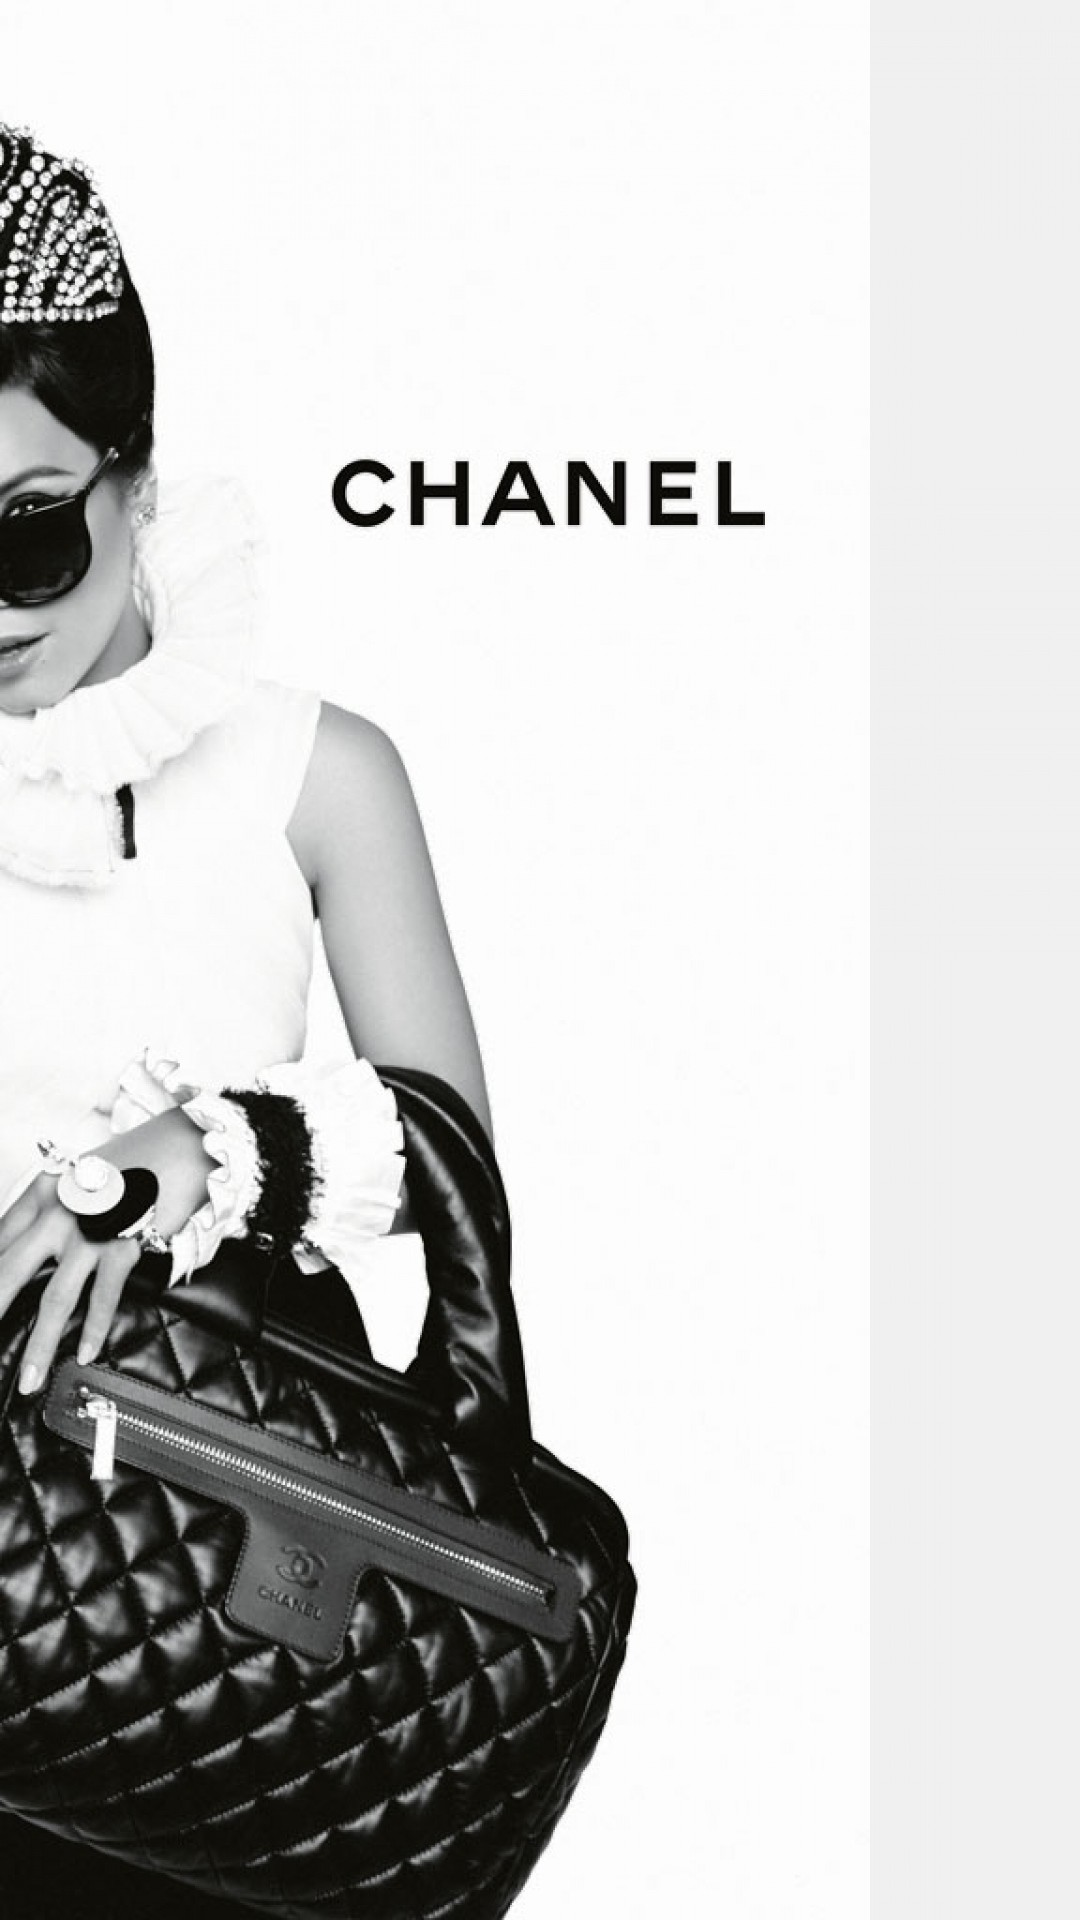 1080x1920 Preview wallpaper chanel, lily allen, girl, bag, sunglasses, high fashion